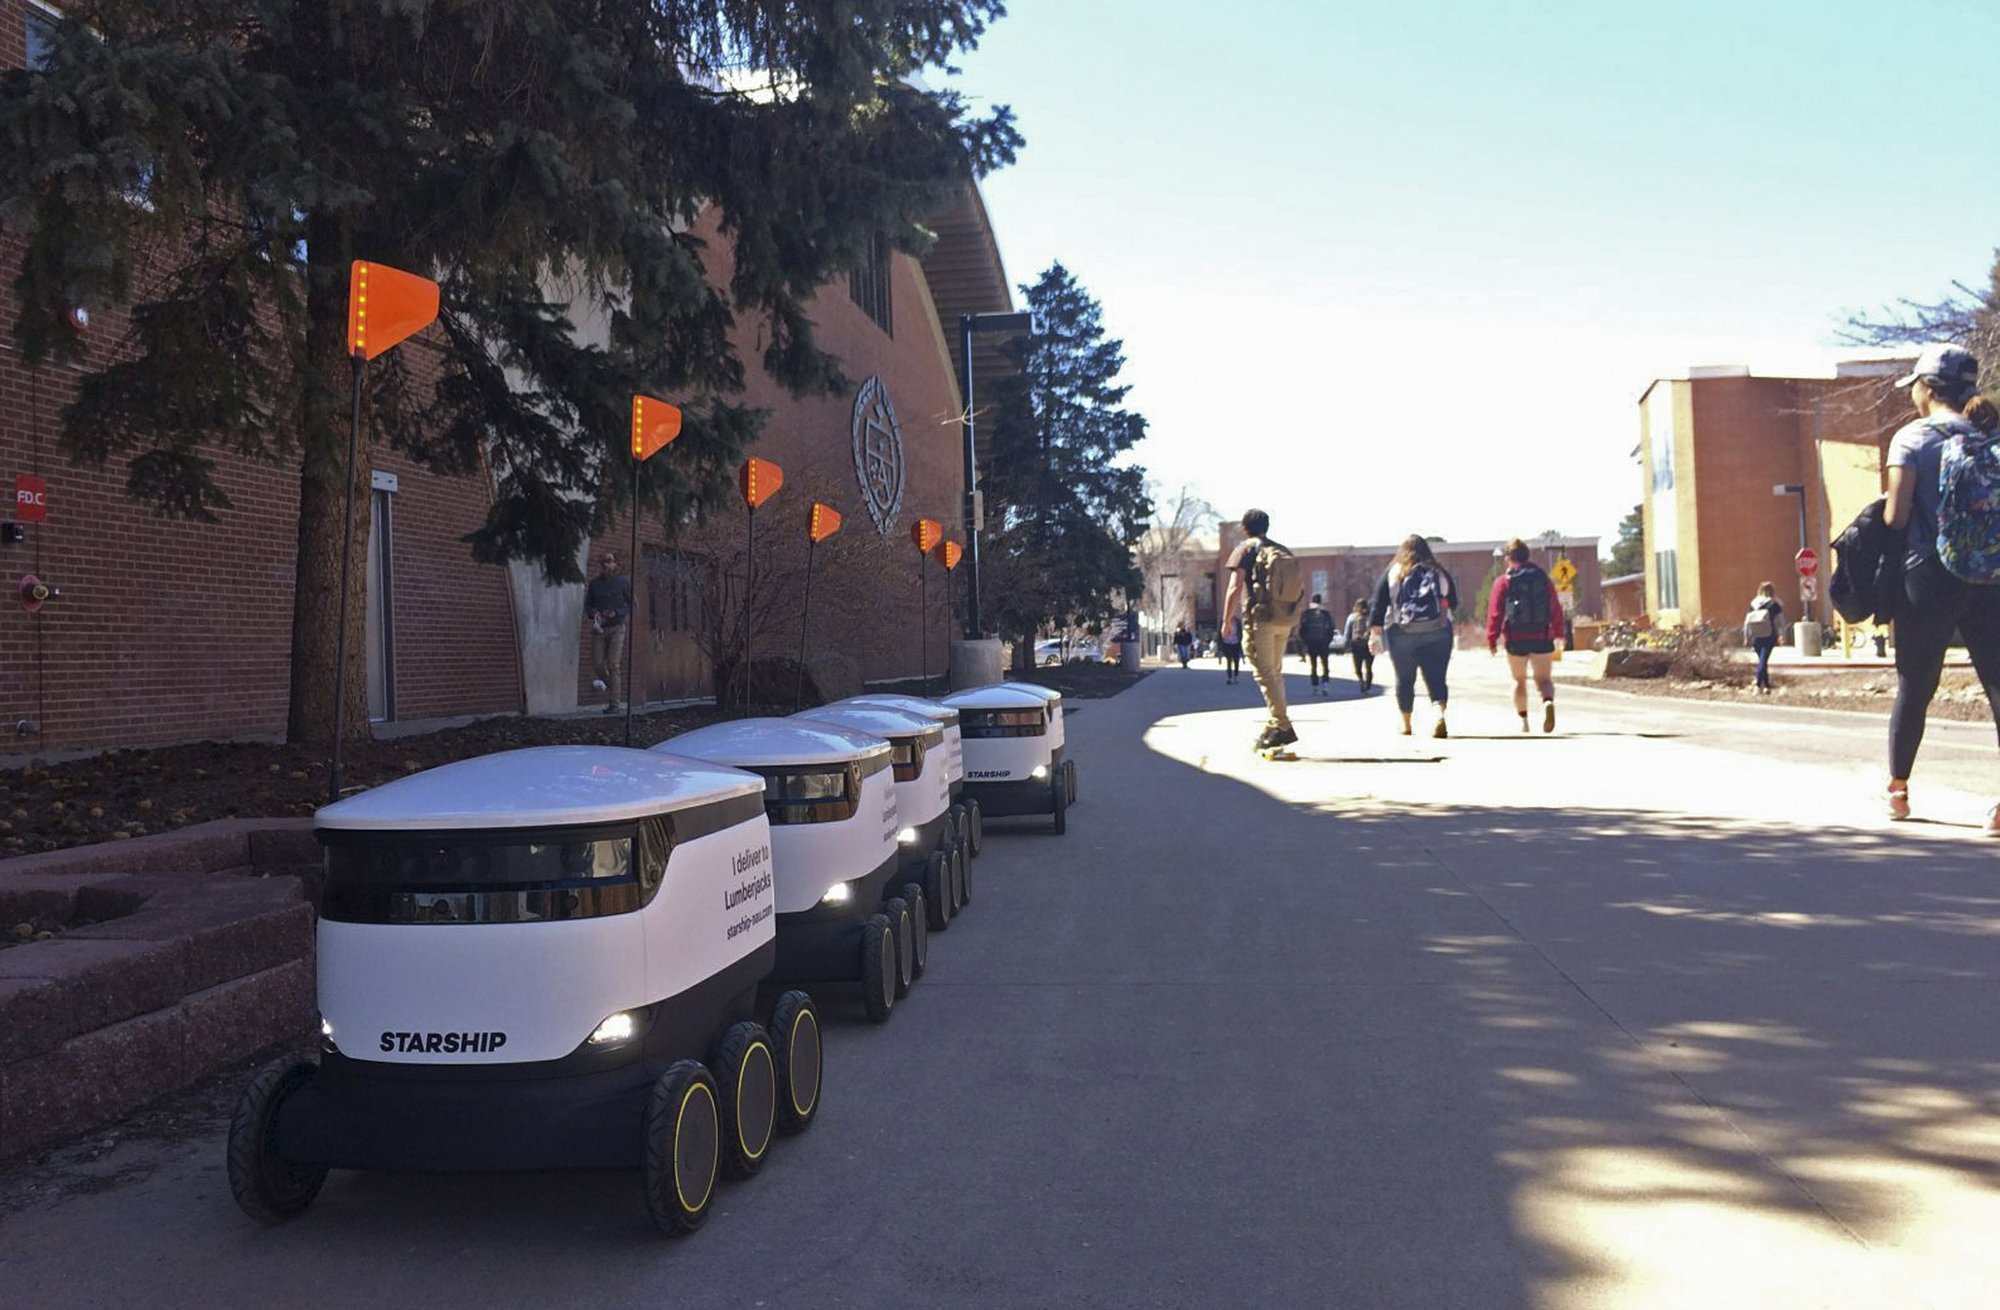 Arizona campus sees fleet of food delivery robots